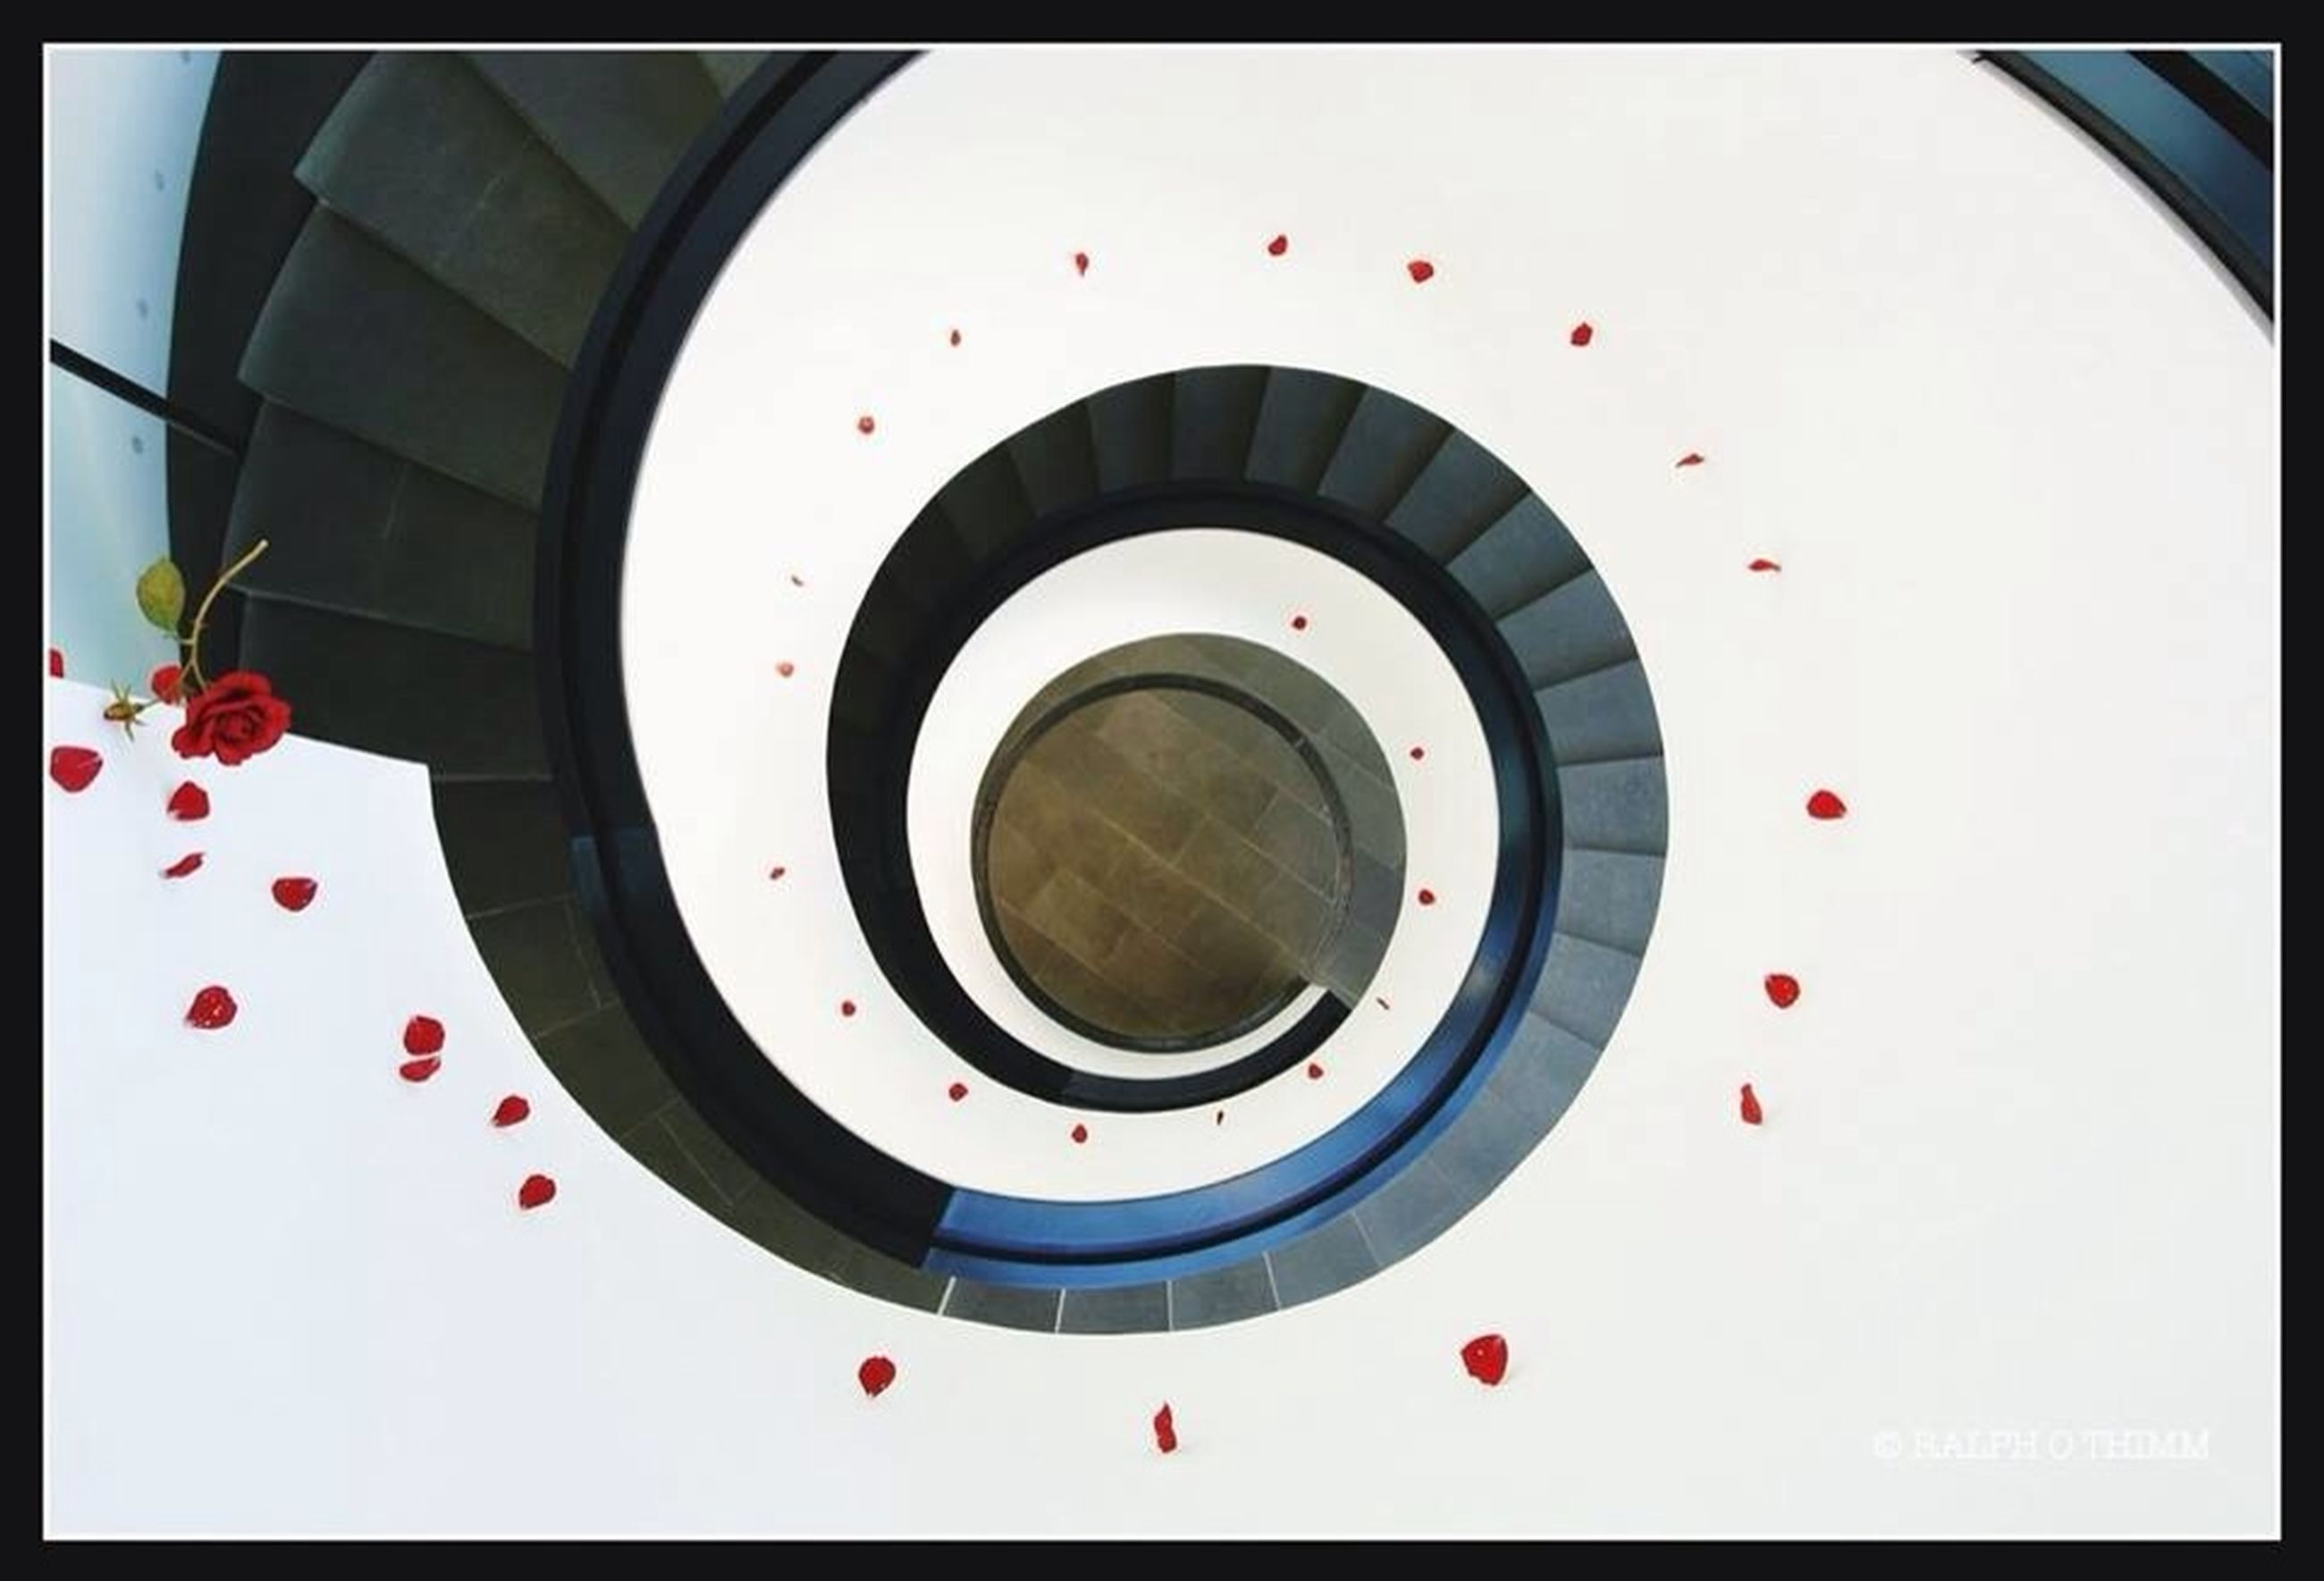 transfer print, circle, indoors, auto post production filter, built structure, geometric shape, spiral, directly above, steps and staircases, steps, railing, staircase, spiral staircase, architecture, close-up, high angle view, low angle view, no people, red, shape